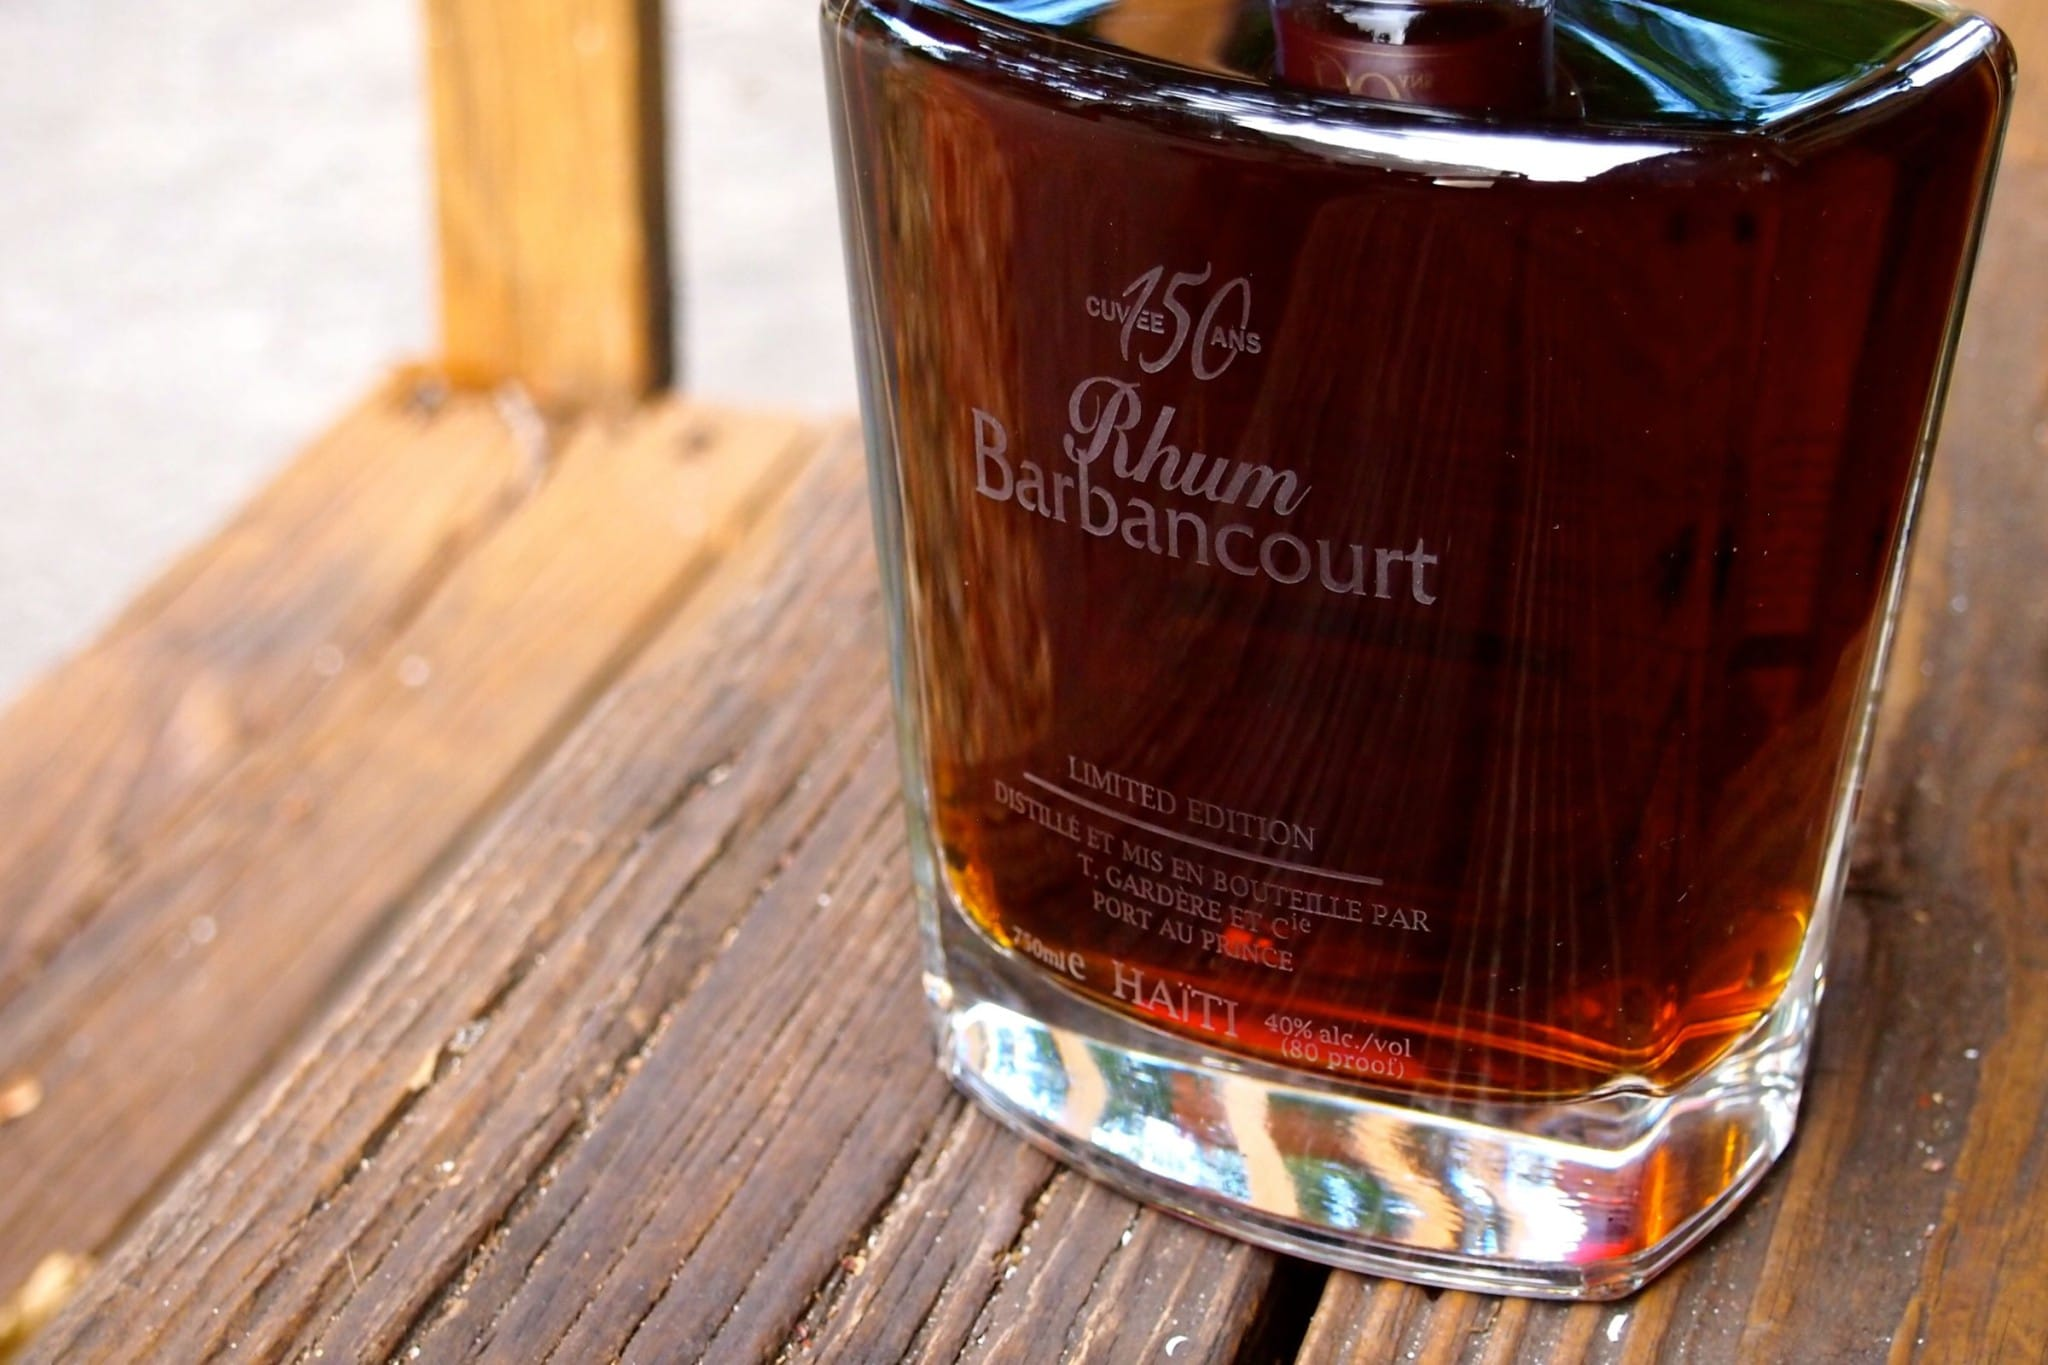 Showy and Sweet Rhum Barbancourt Cuvée 150 Ans